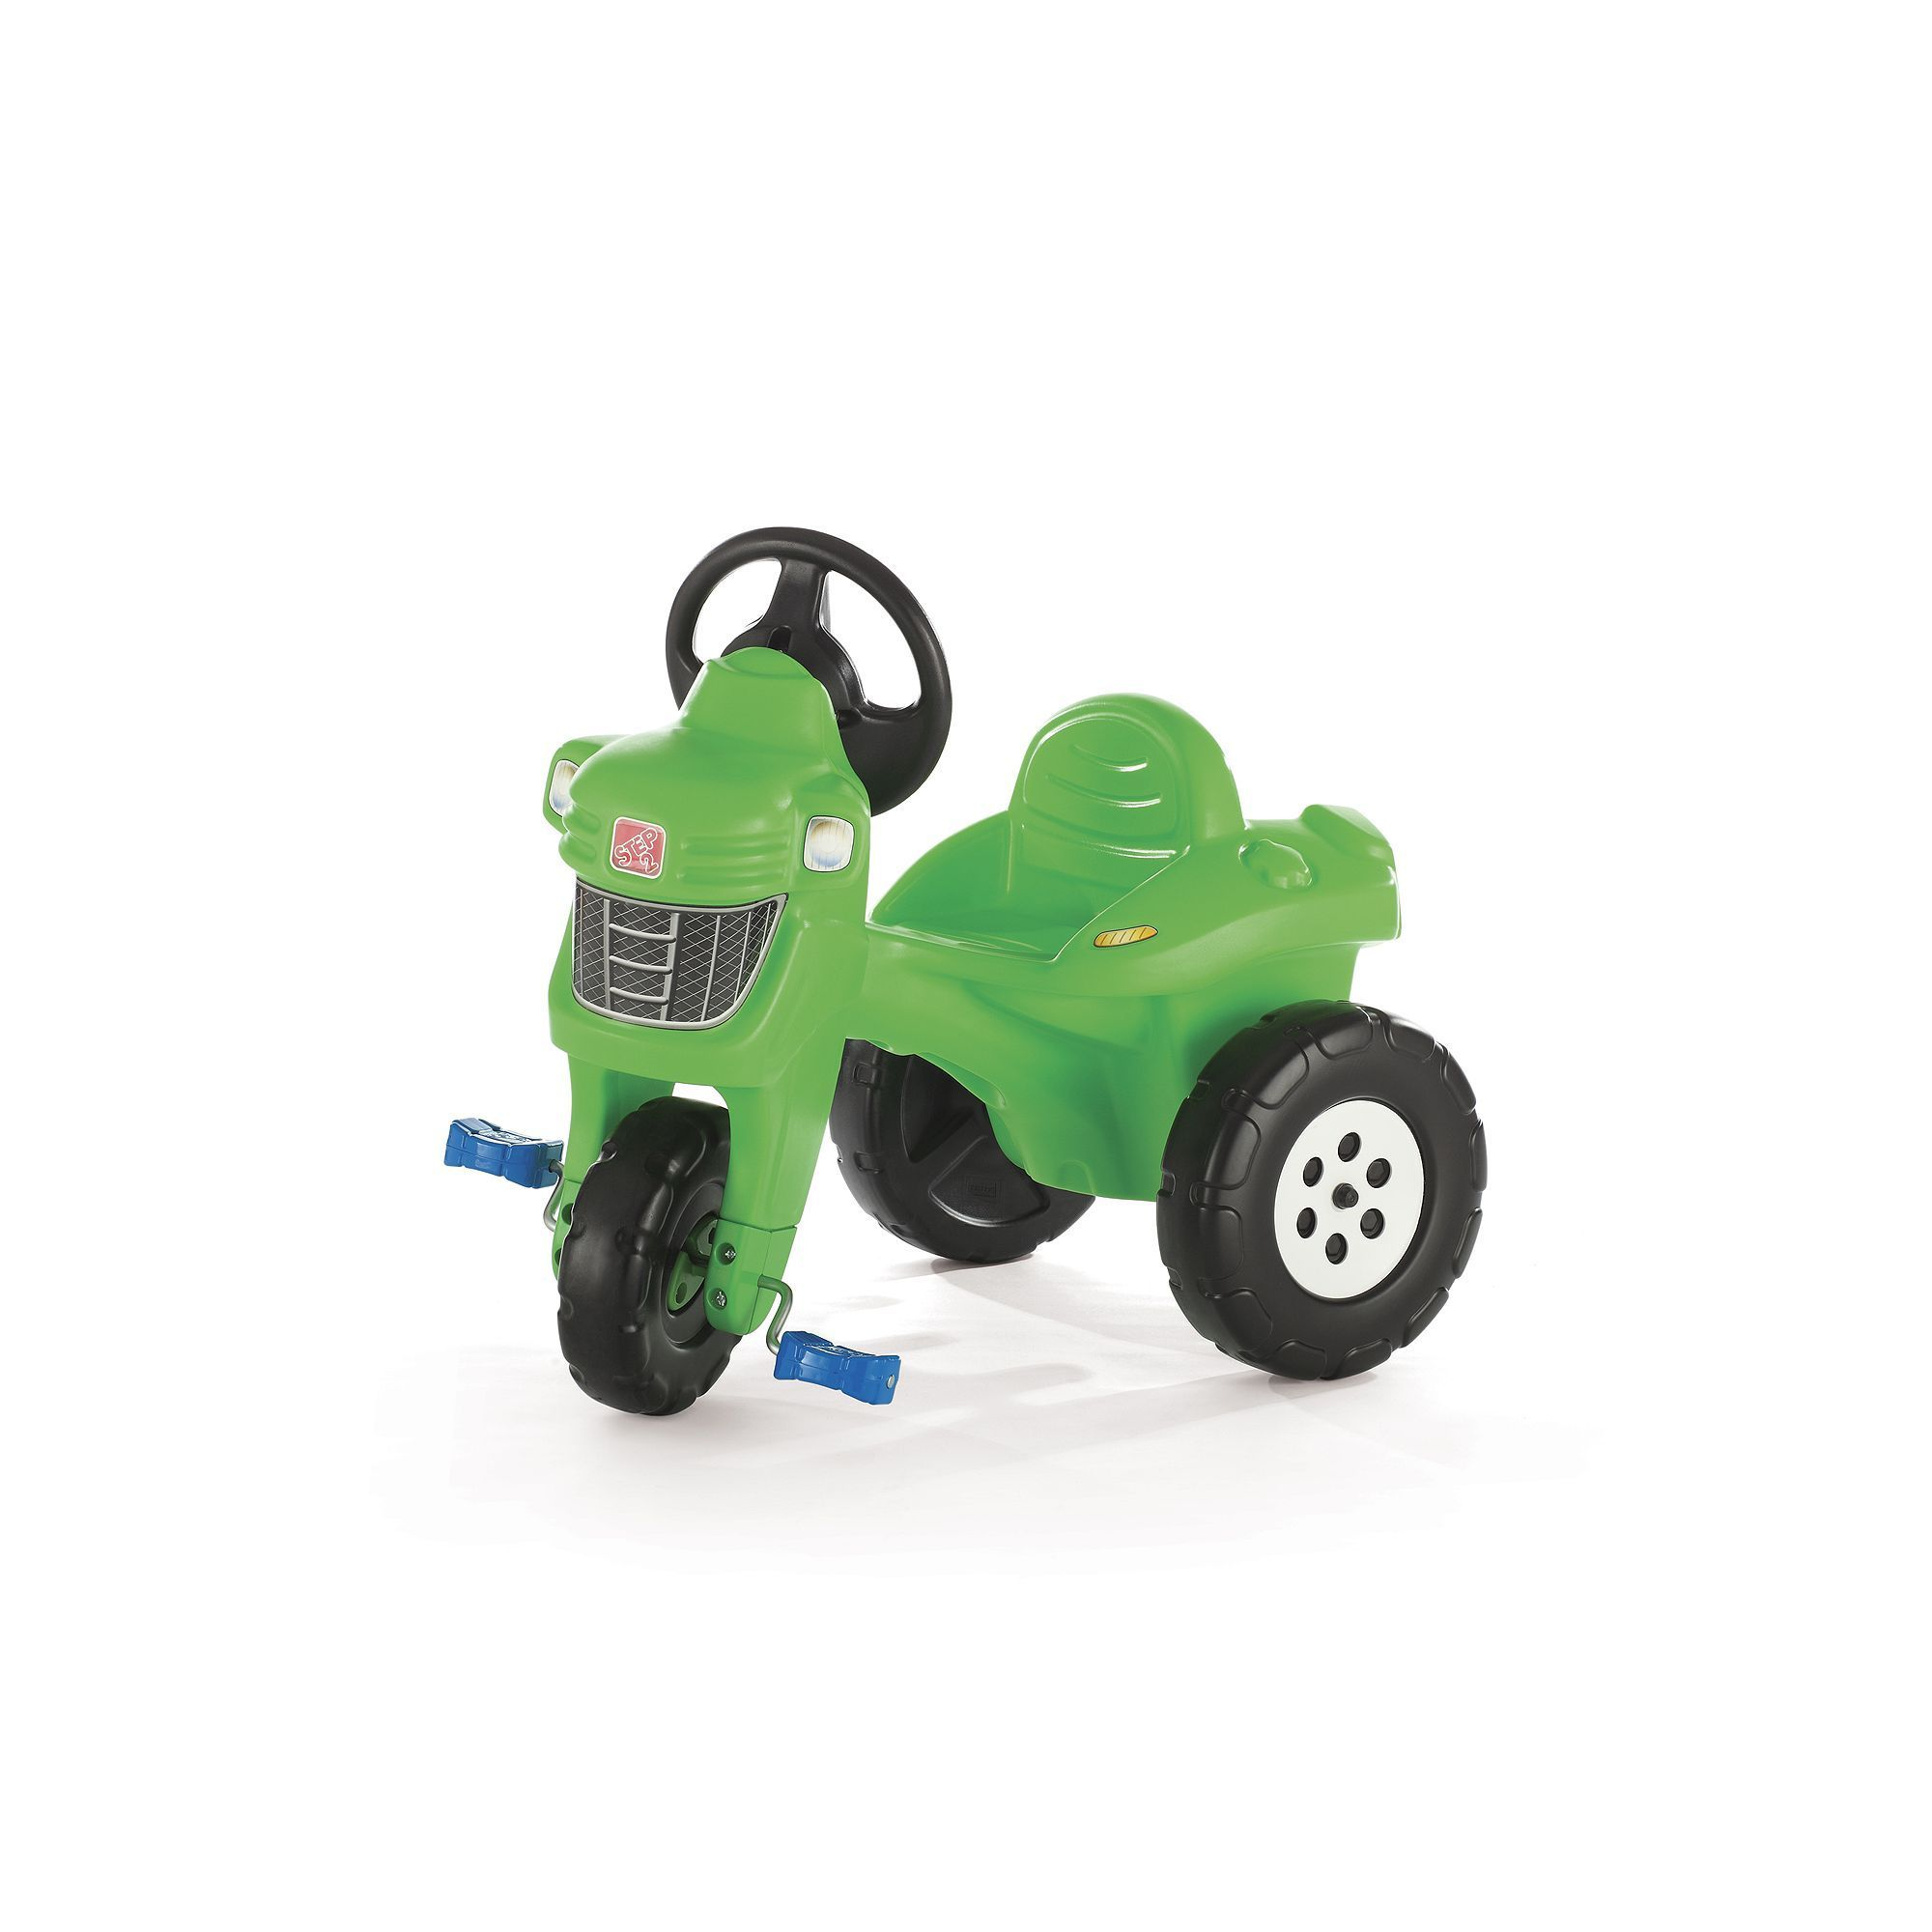 B toys cars  Step Pedal Farm Tractor RideOn Multicolor  Products